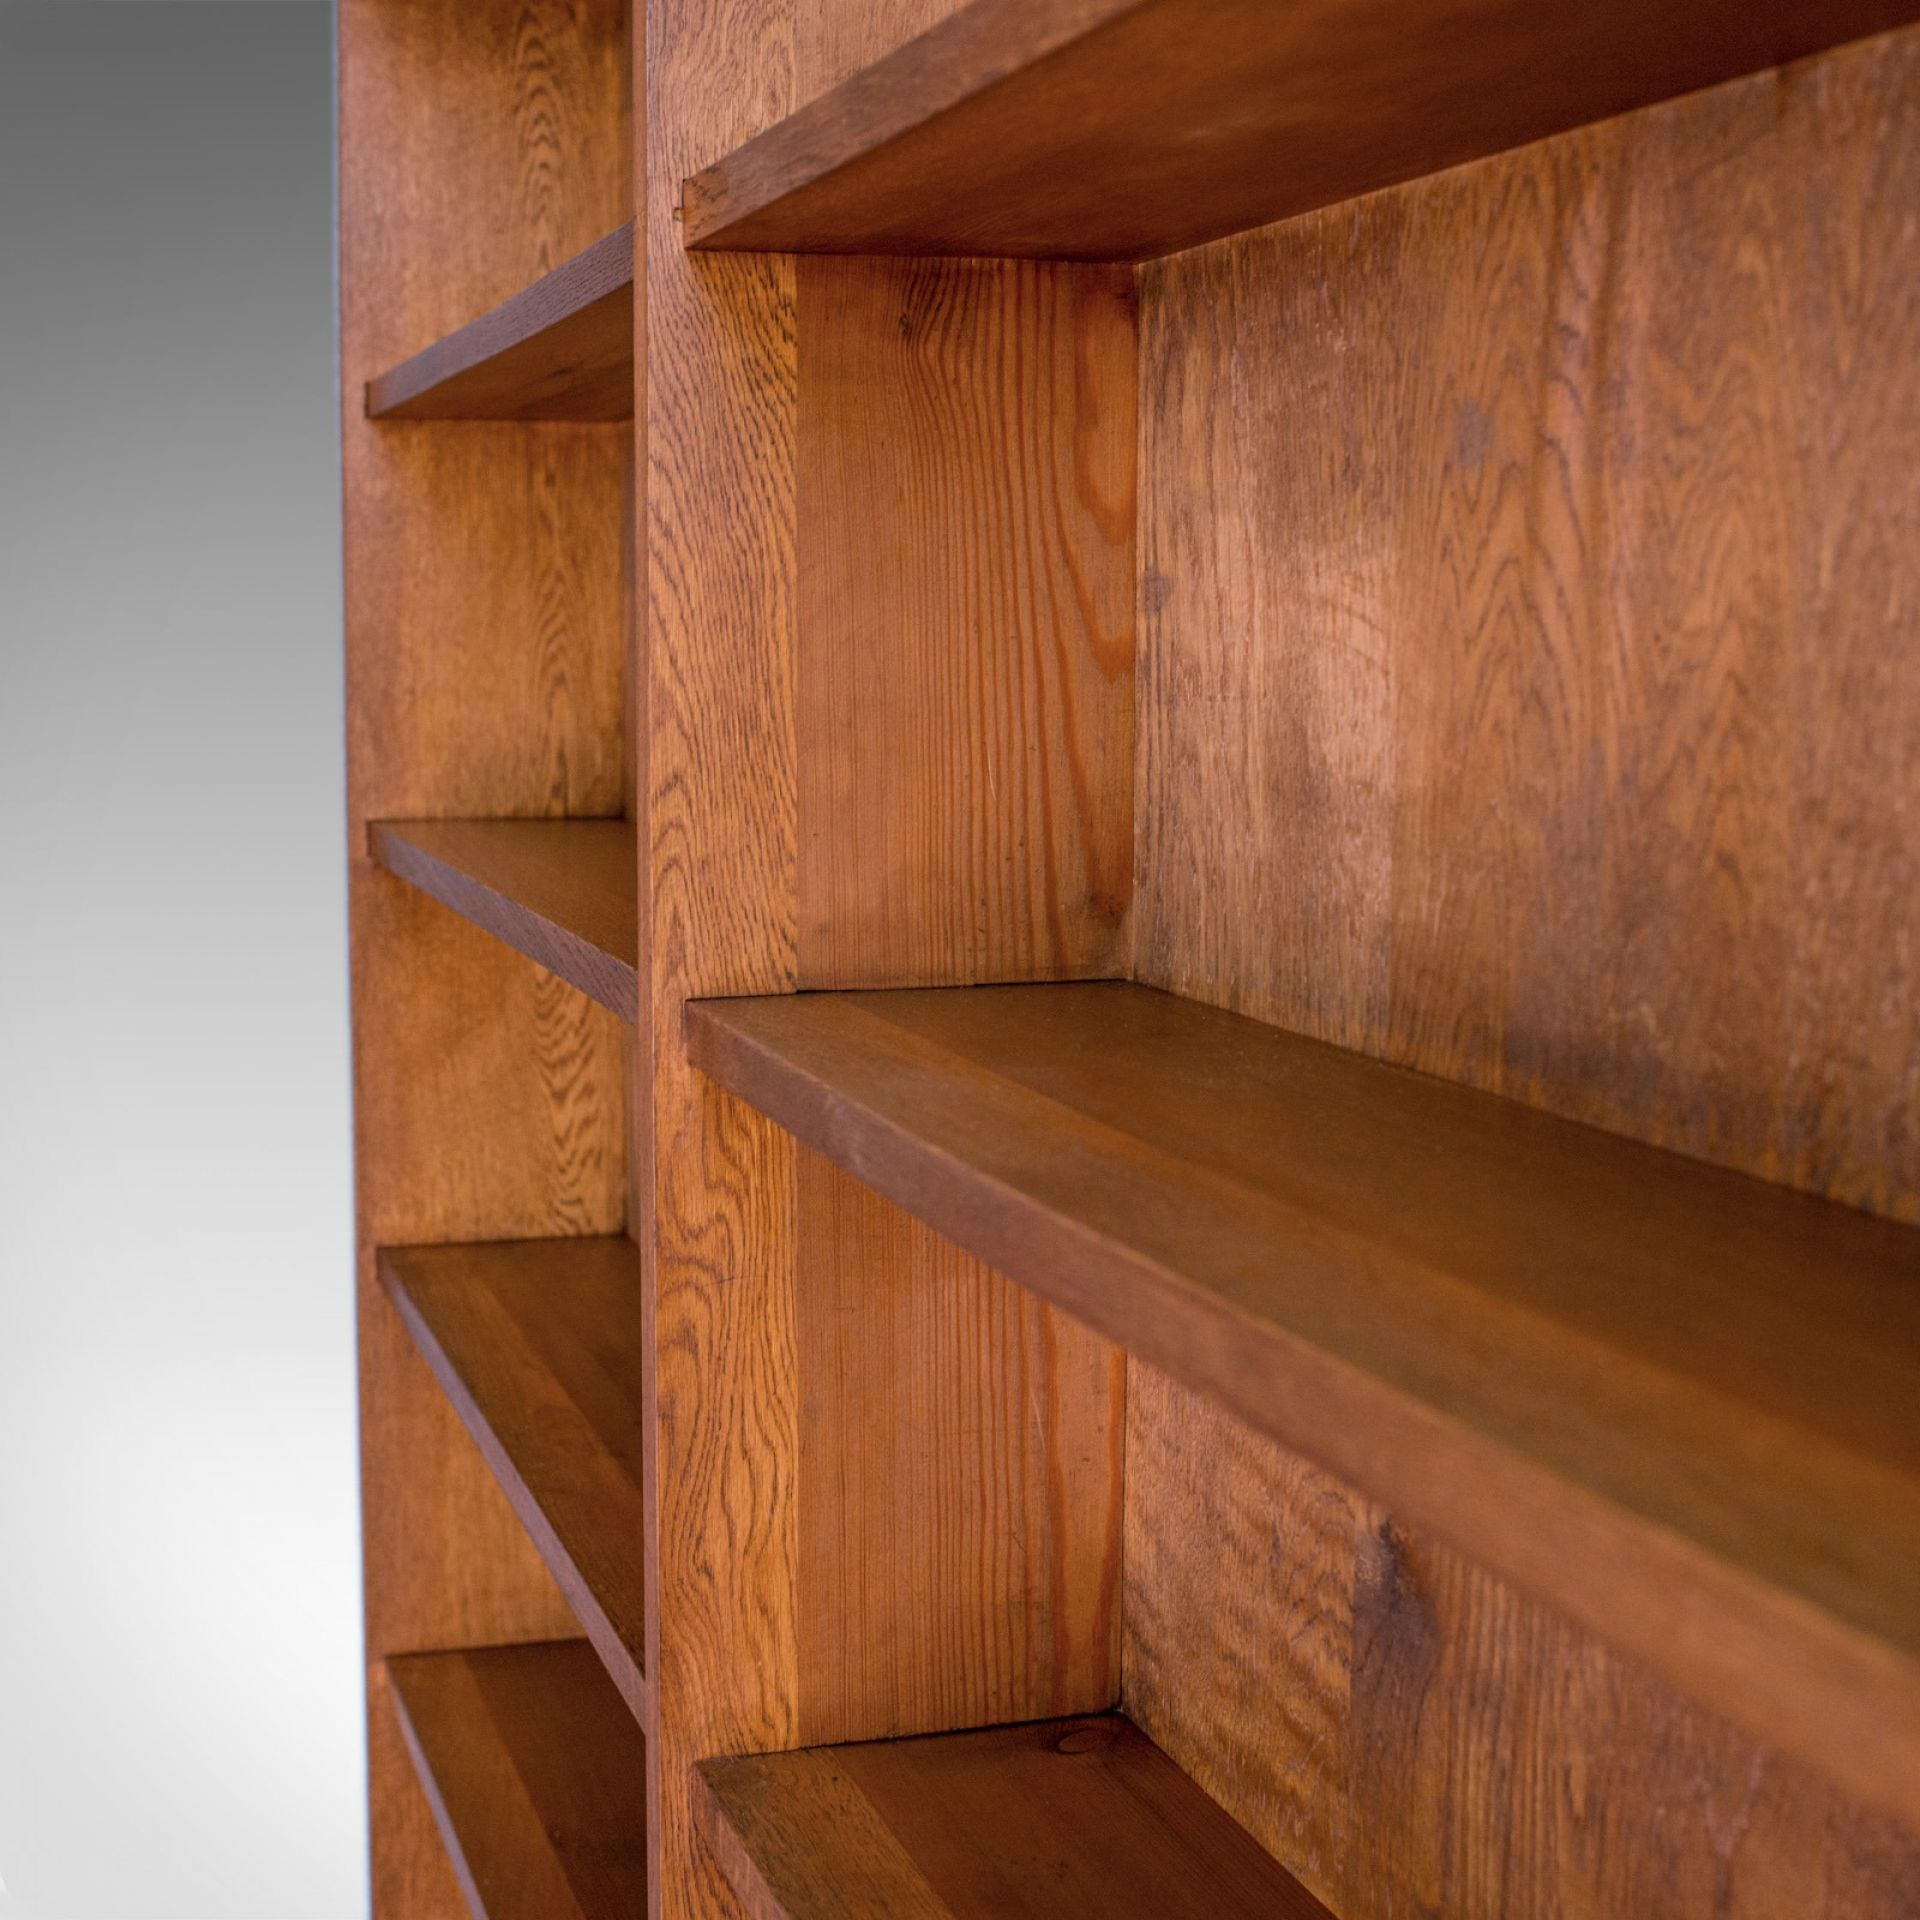 Antique Library Bookshelf, Pitch Pine, Double-Sided Bookcase, Room Divider c1910